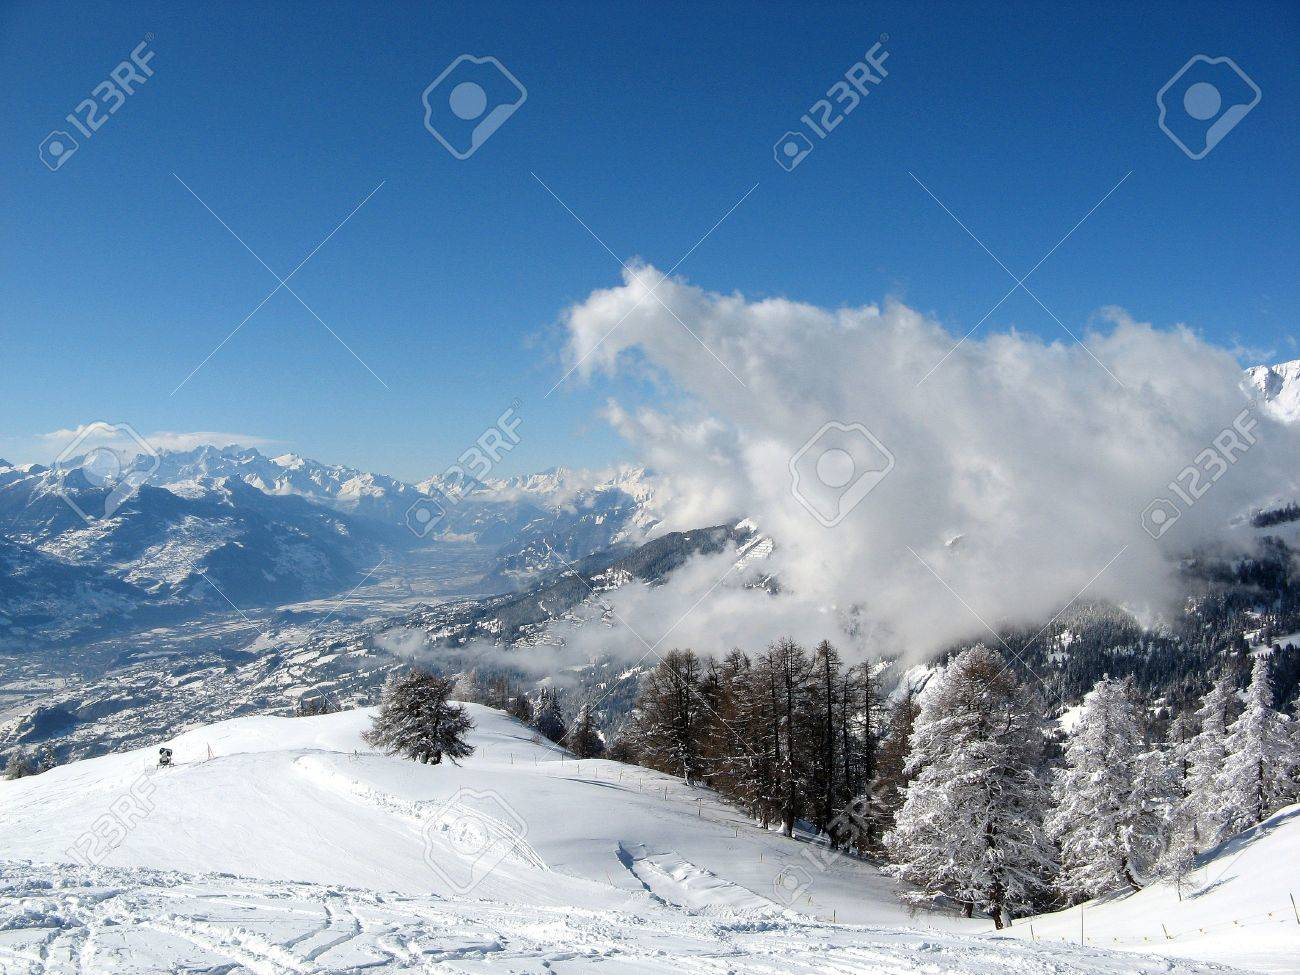 scenic view of ski slopes in resort of crans montana with mountains